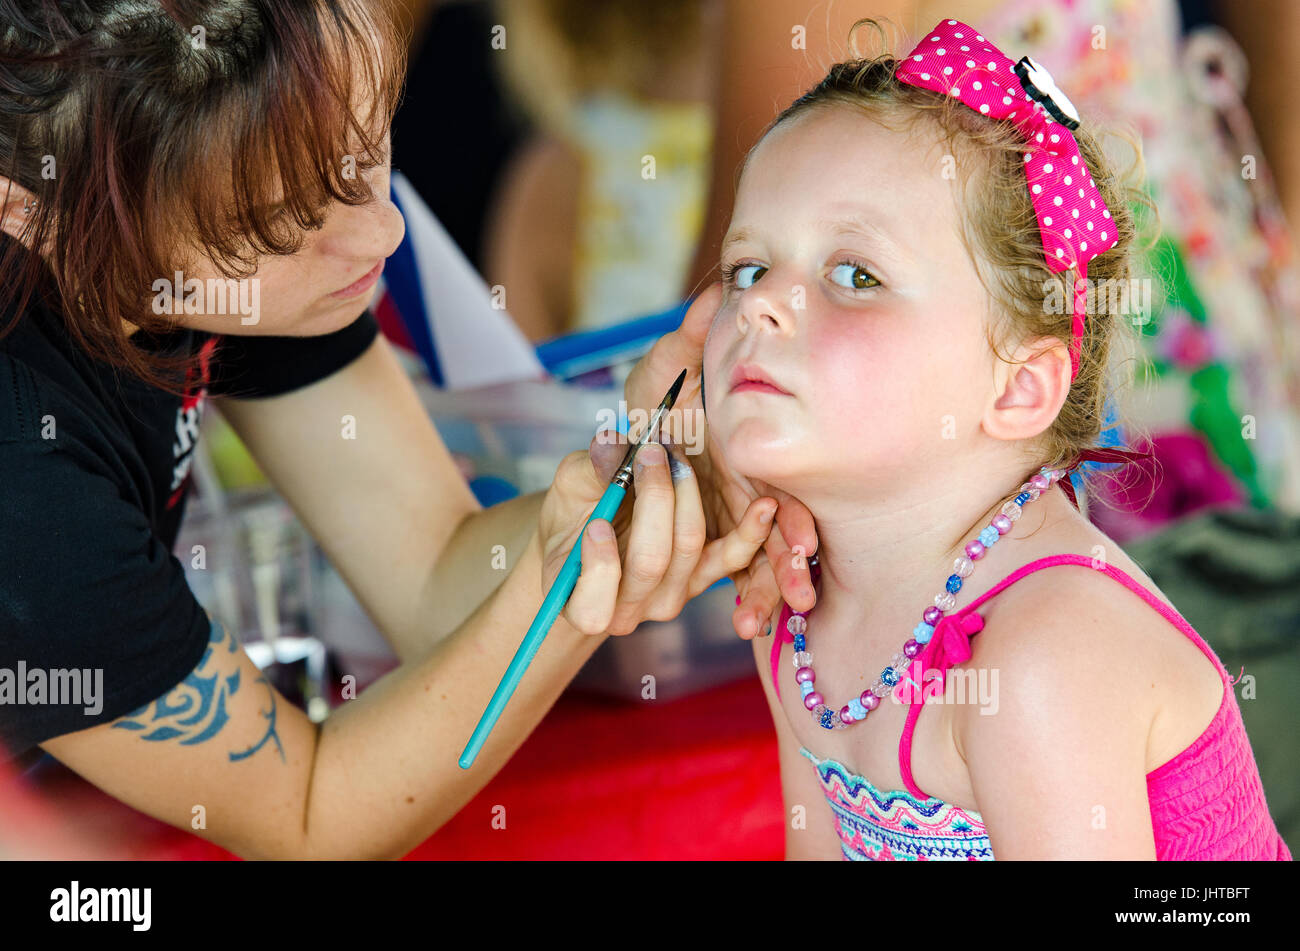 Philadelphia, USA. 15th July, 2017. A young girl has her face painted. Credit: Christopher Evens/Alamy Live News - Stock Image